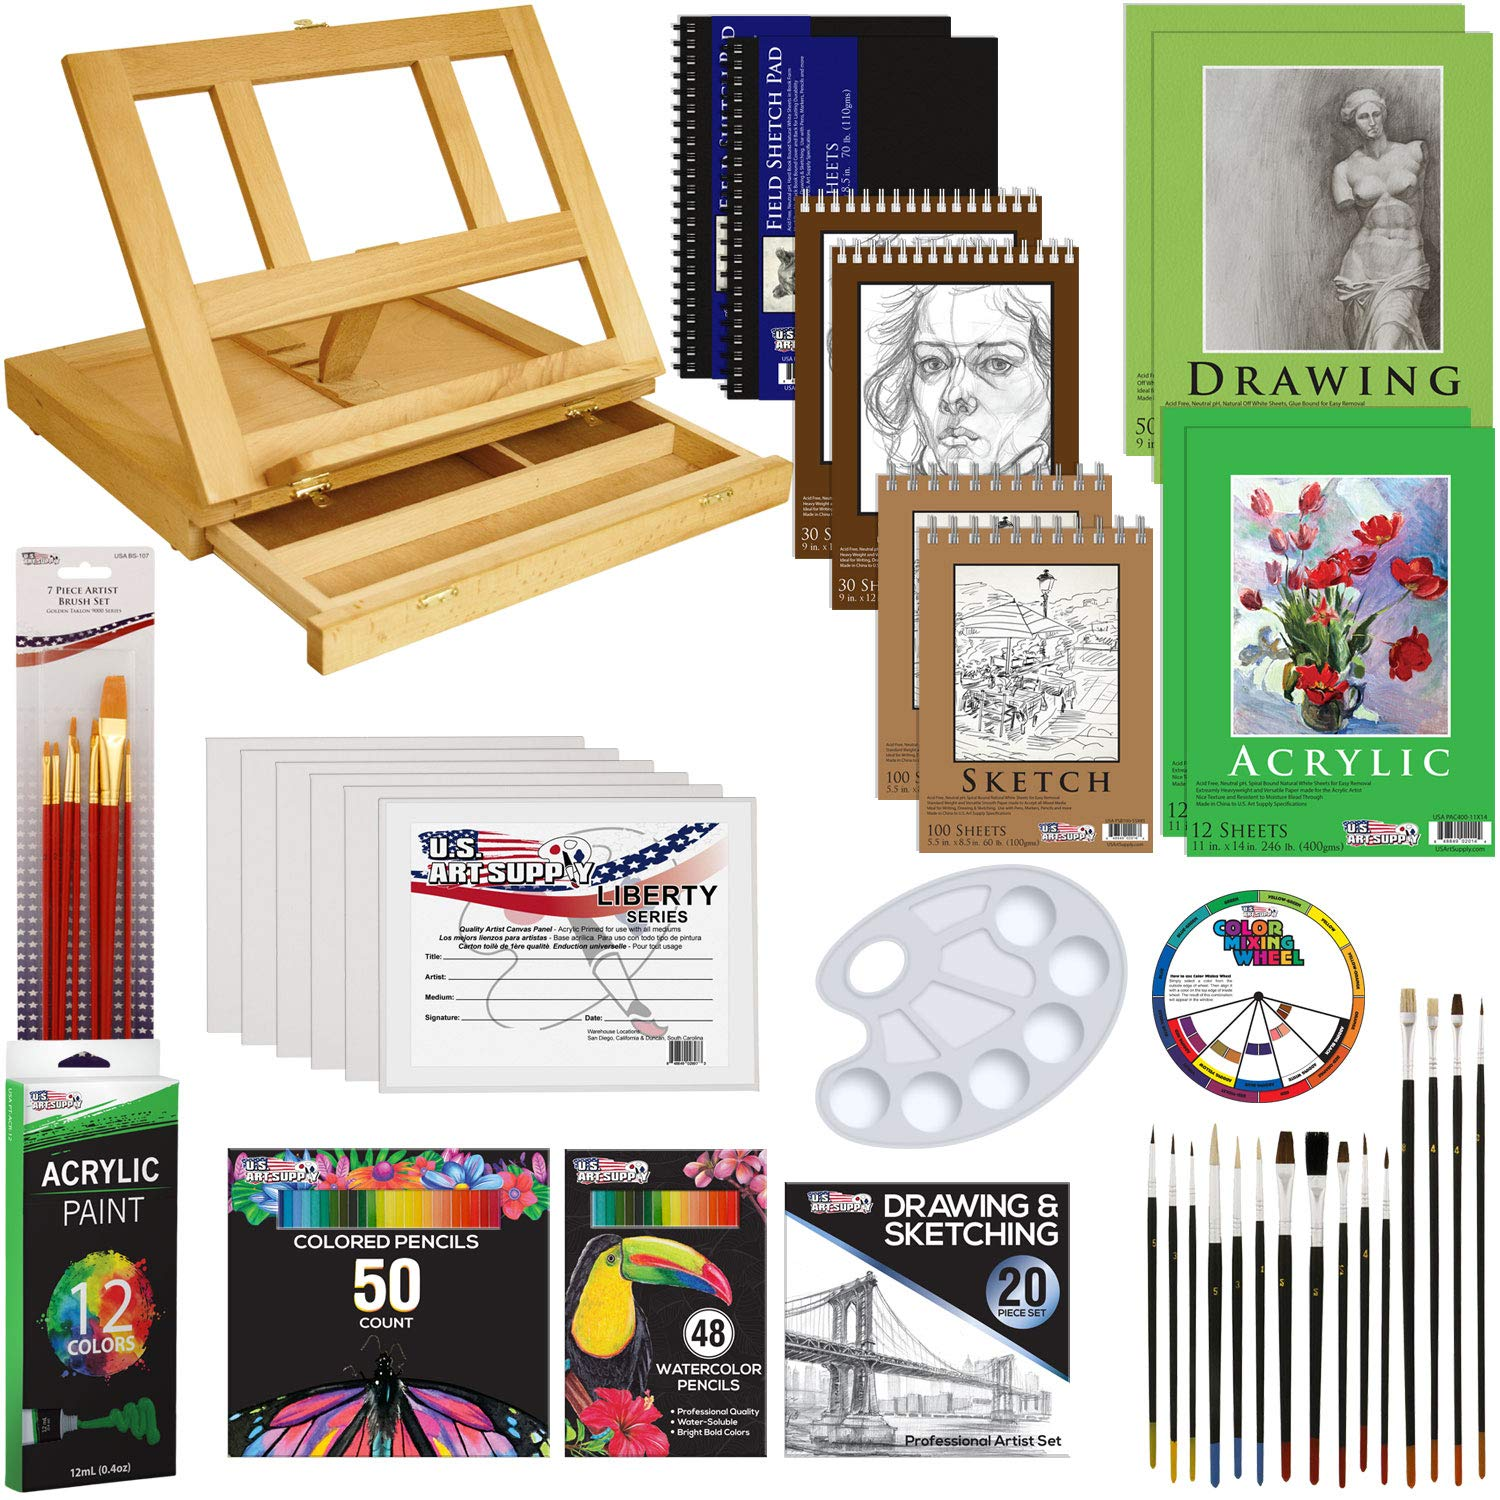 US Art Supply 171-Piece Acrylic Painting & Sketch Drawing Set with Wood Easel, Acrylic Paint, 4 Paper Pads, Canvas Panels, Brushes, Color Pencil Set, Hardbound Sketchbook and Plastic Palette